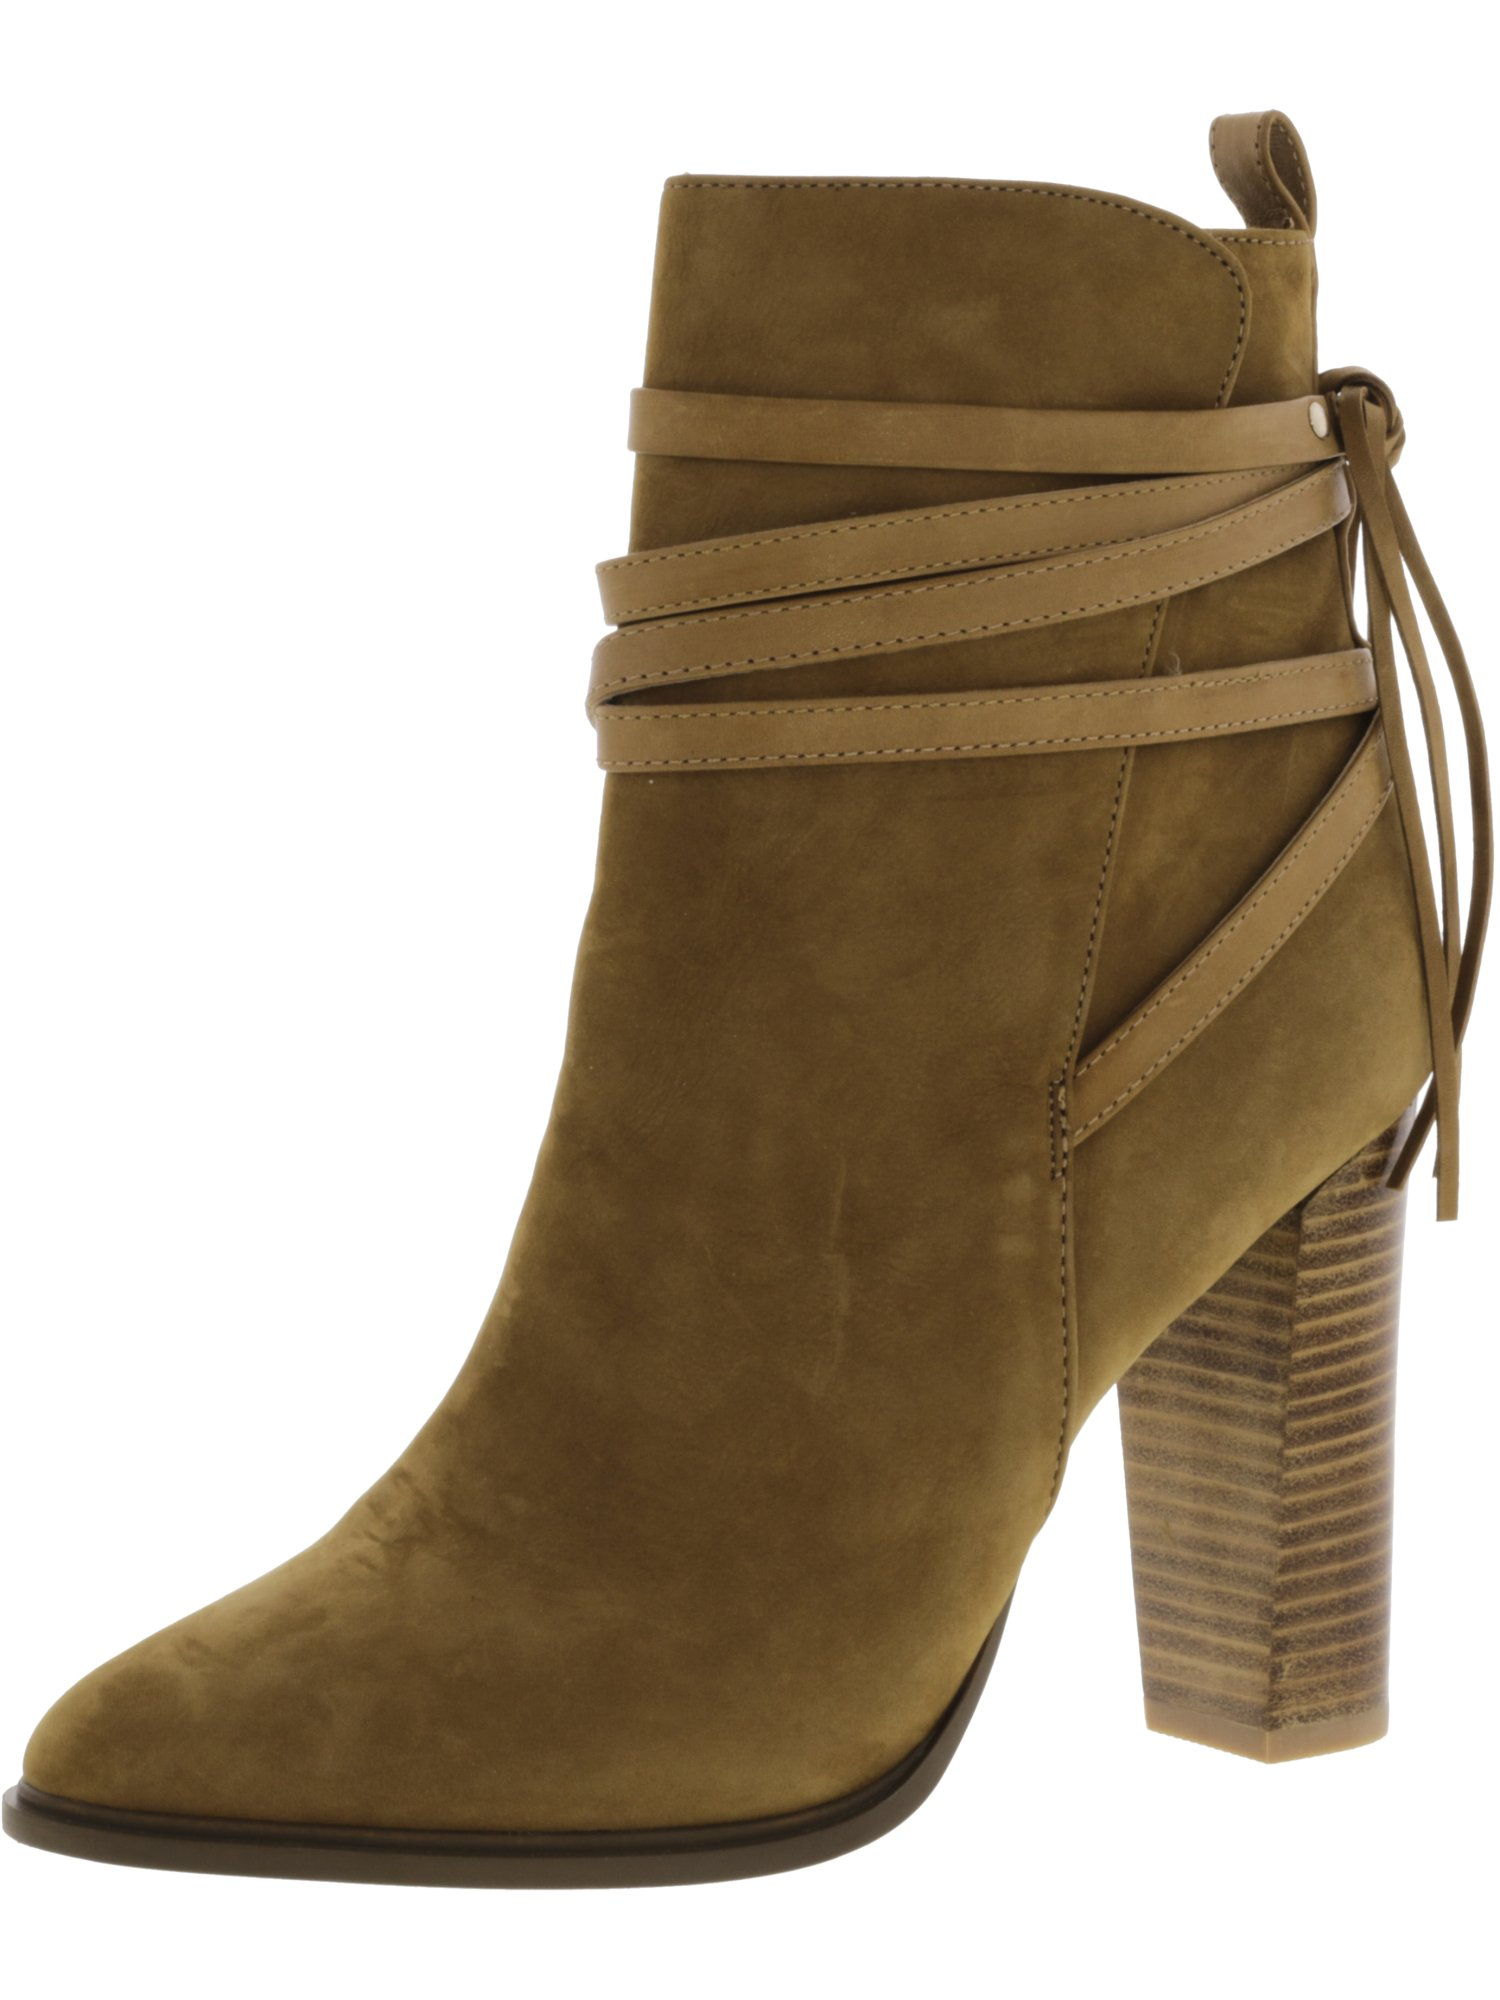 d9226e910ce Steve Madden Women s Gaybel Ankle Bootie Tan Nubuck 10 M US. About this  product. Picture 1 of 2  Picture 2 of 2